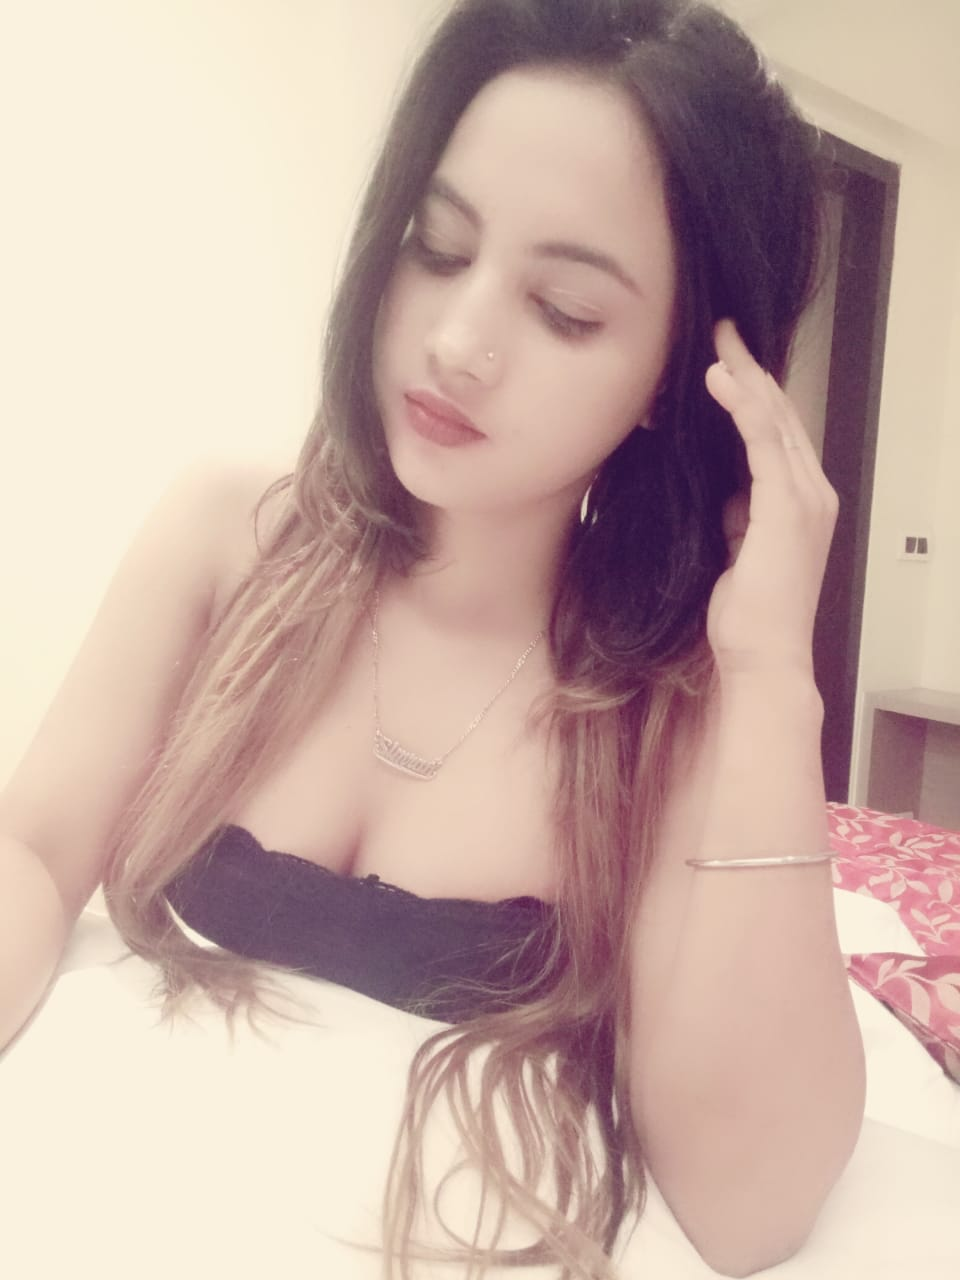 bhiwandi High Profile Escorts In